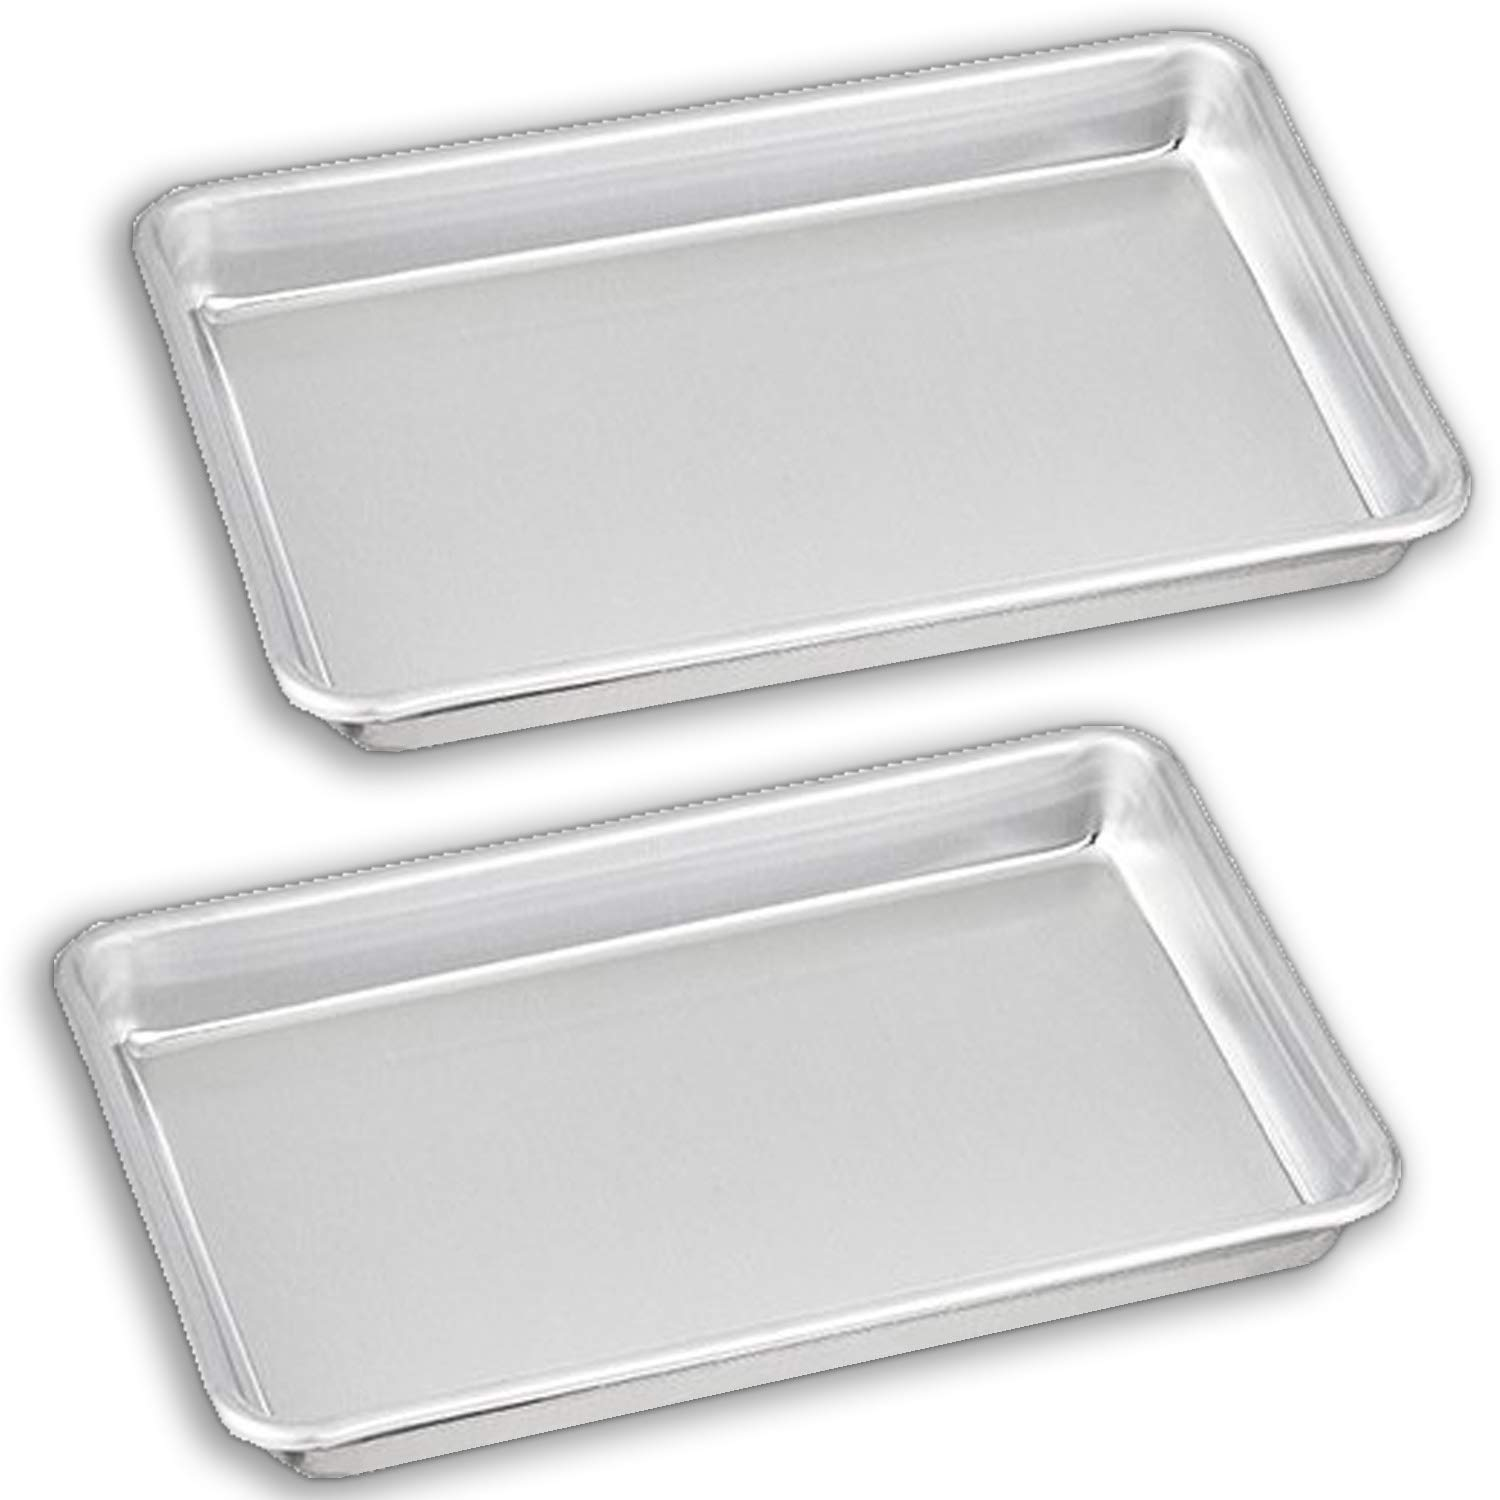 """Bakeware Set – 2 Aluminum Sheet Pan – 1/8 Size (6.5"""" x 9.5"""") – for Home Use. Perfect Size For Your Microwave Oven, Non Toxic, Perfect Baking Supply set for gifts, for new and experienced bakers alike"""